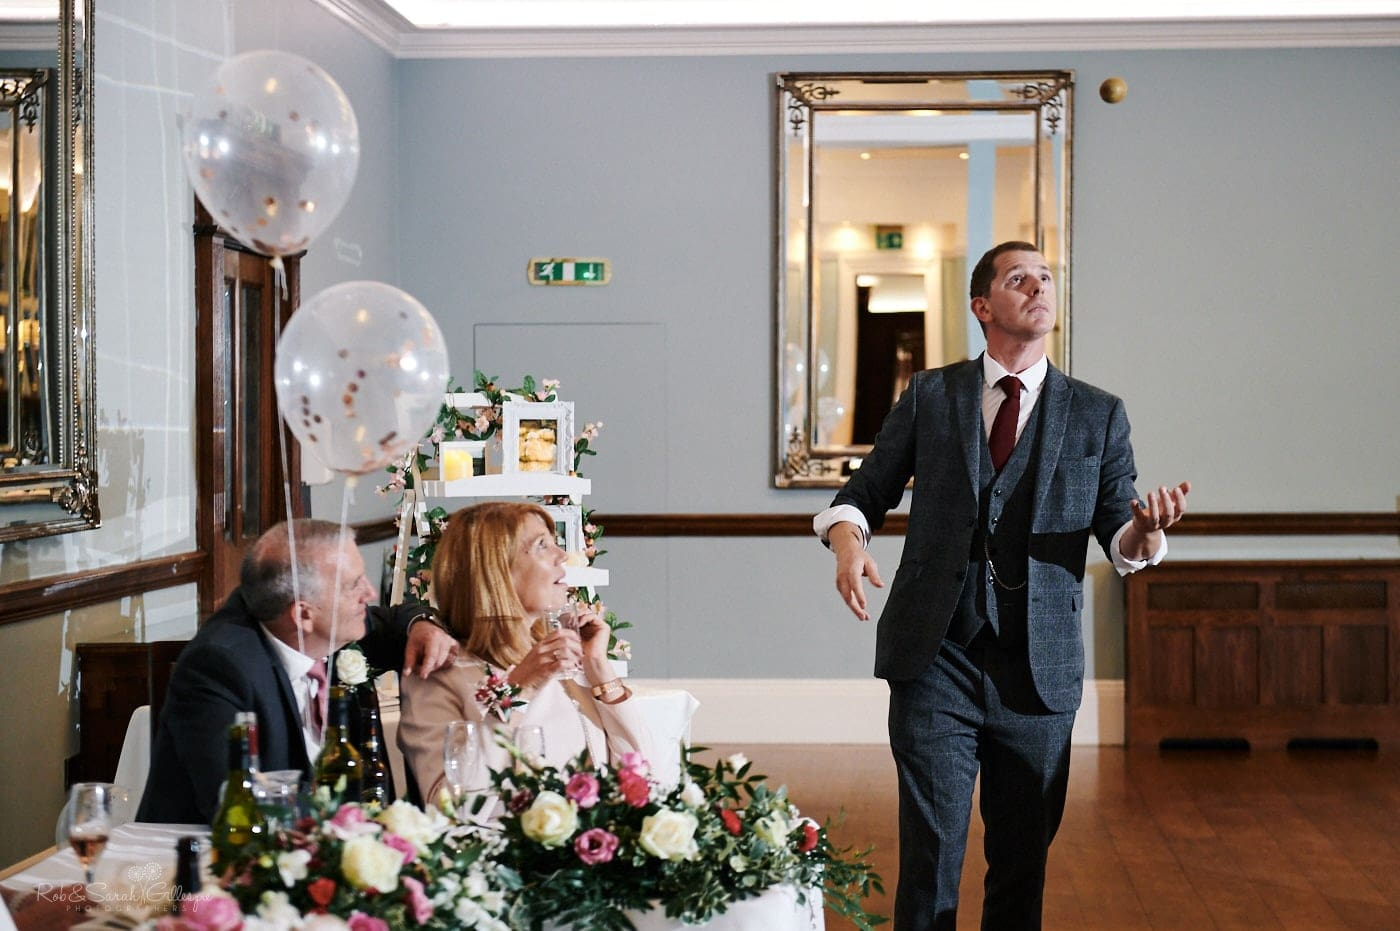 Magician performs for wedding party in Ballroom at Pendrell Hall